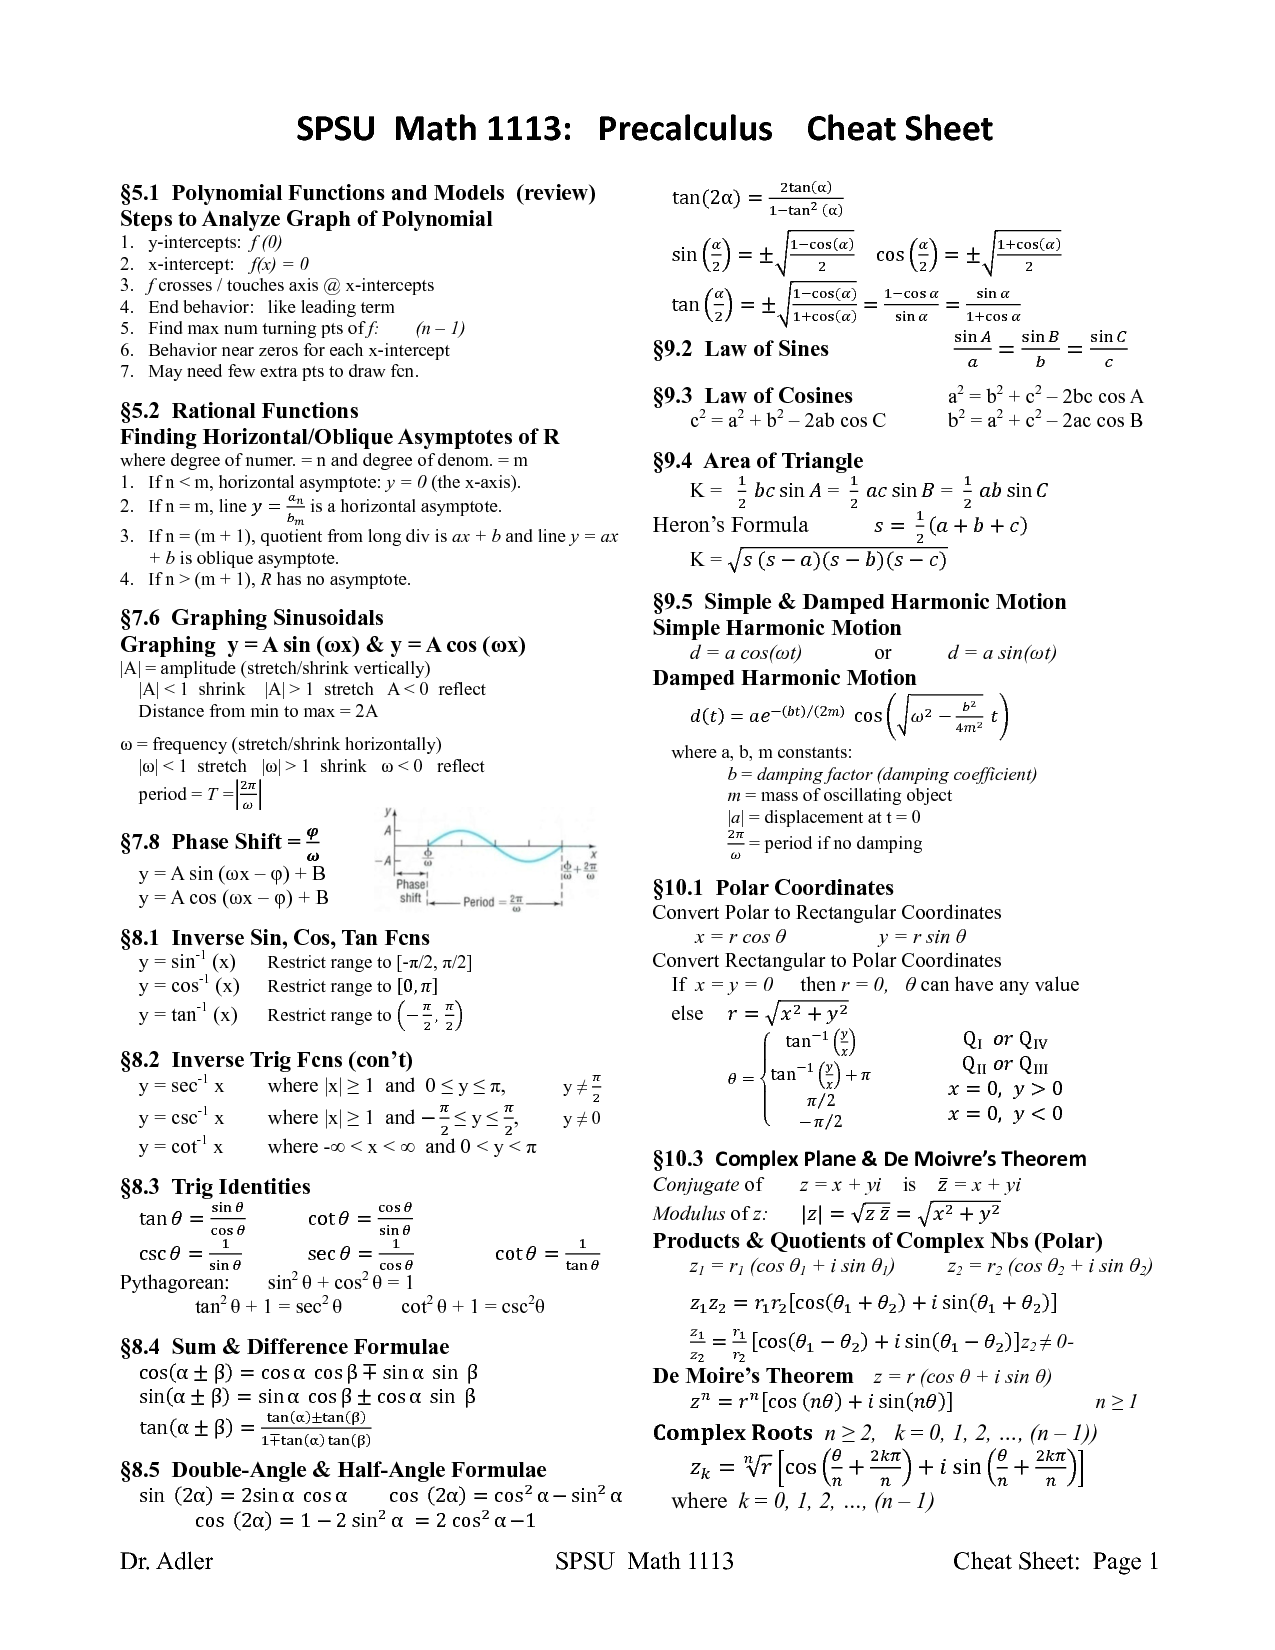 SPSU Math 1113 Precalculus Cheat Sheet - PDF - PDF | Higher Ed ...